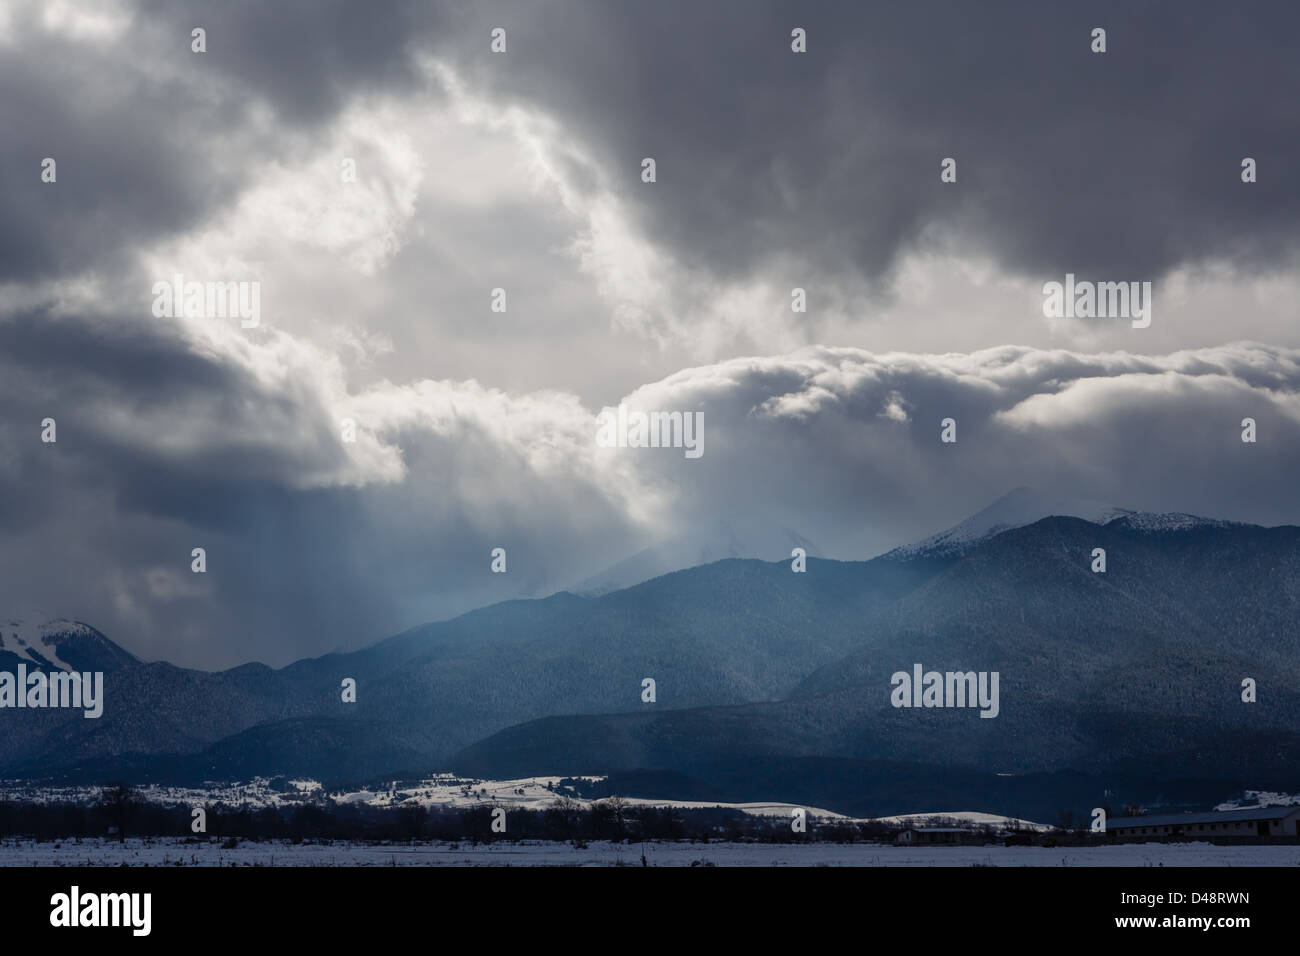 Gleam in clouds of a snow storm over mountains - Stock Image